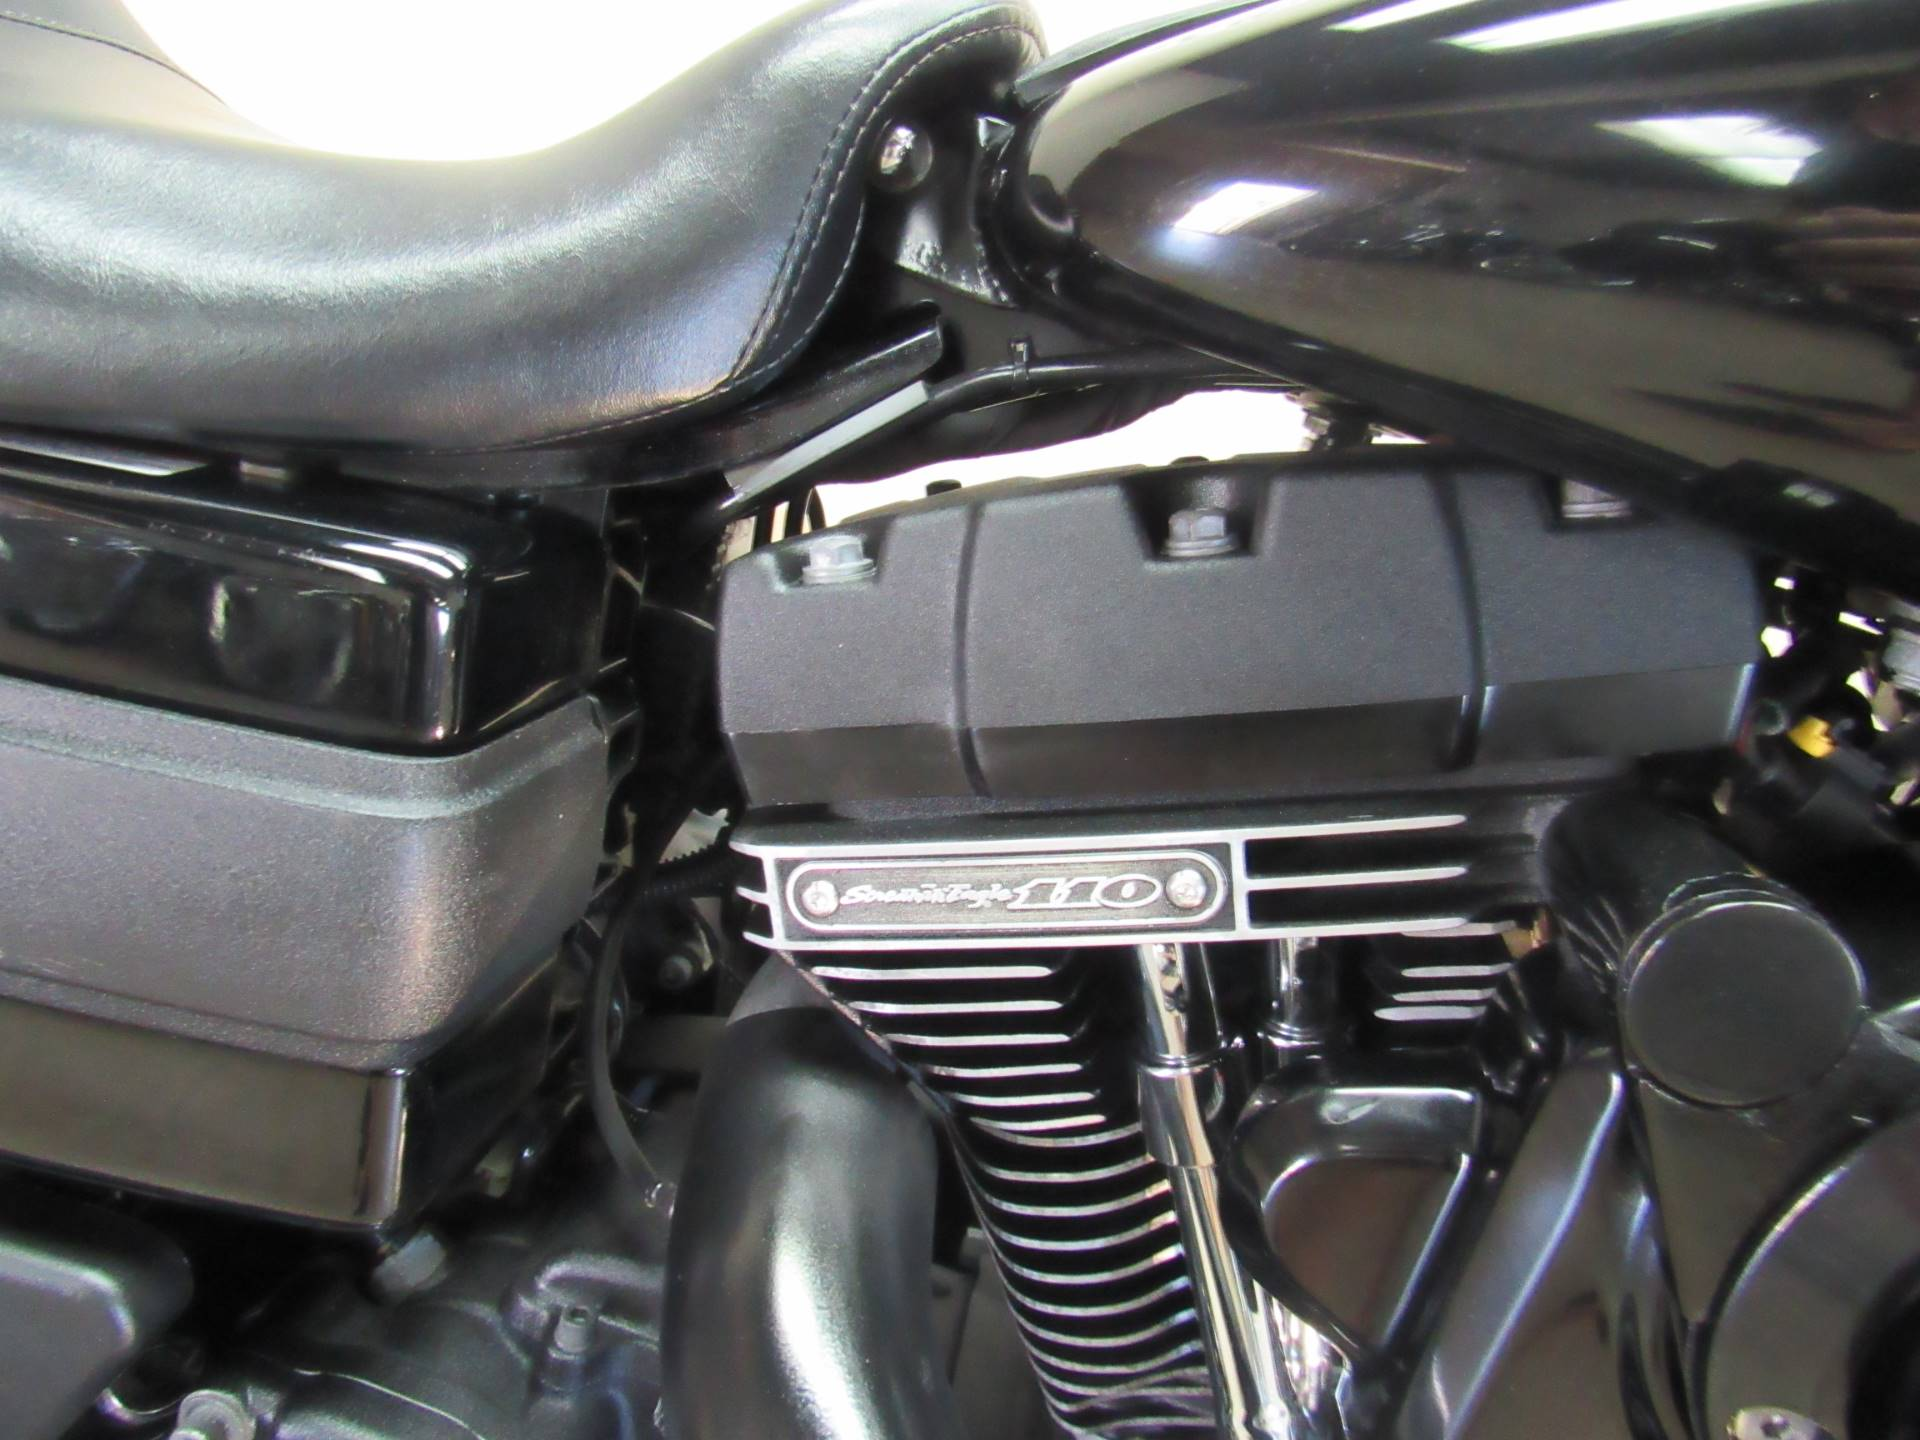 2017 Harley-Davidson Low Rider® S in Temecula, California - Photo 7